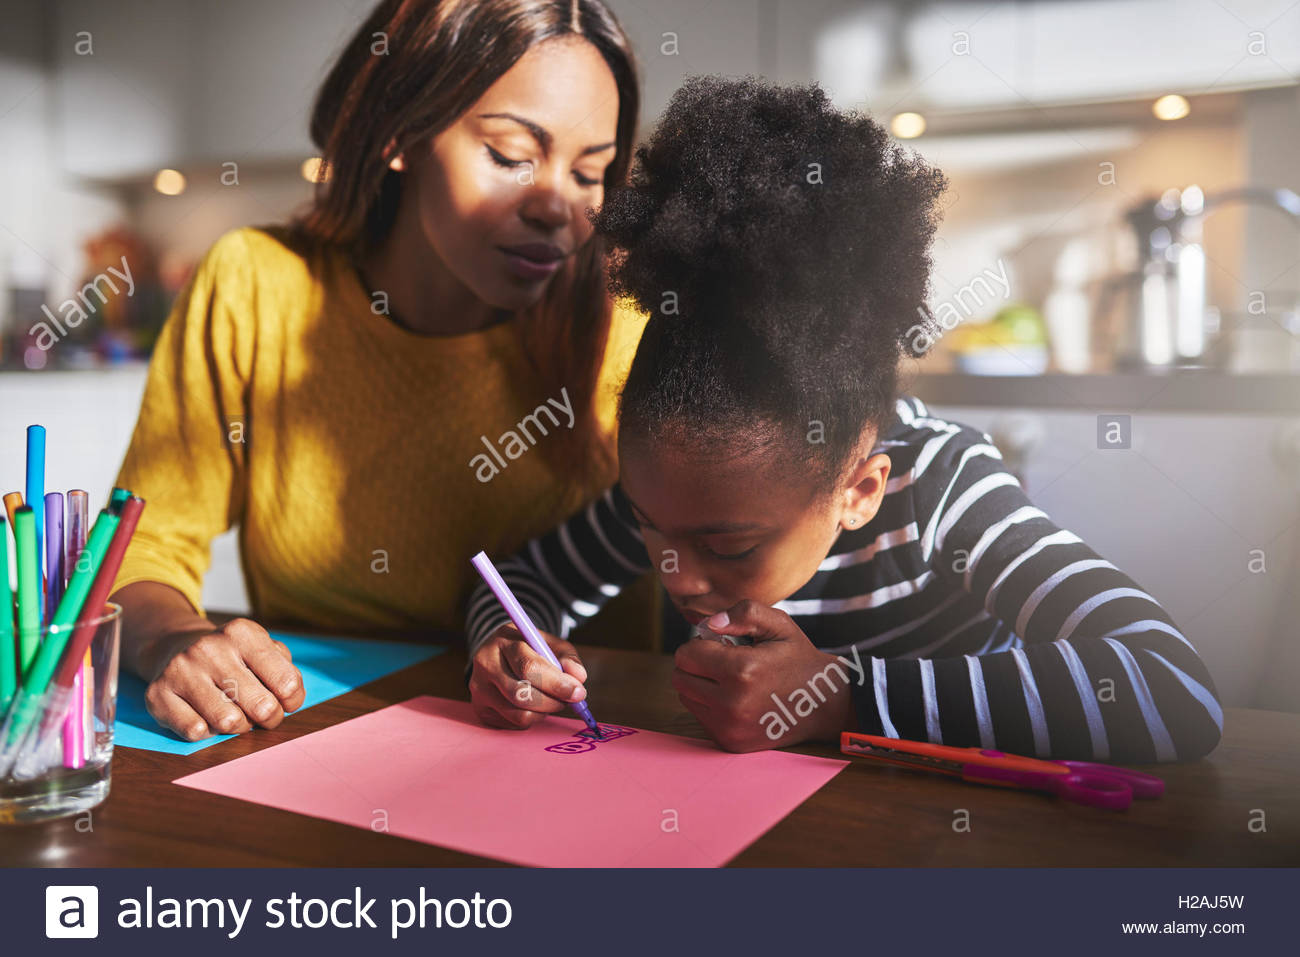 1300x957 Mom And Child Drawing In Kitchen, Black Mother And Daughter Stock